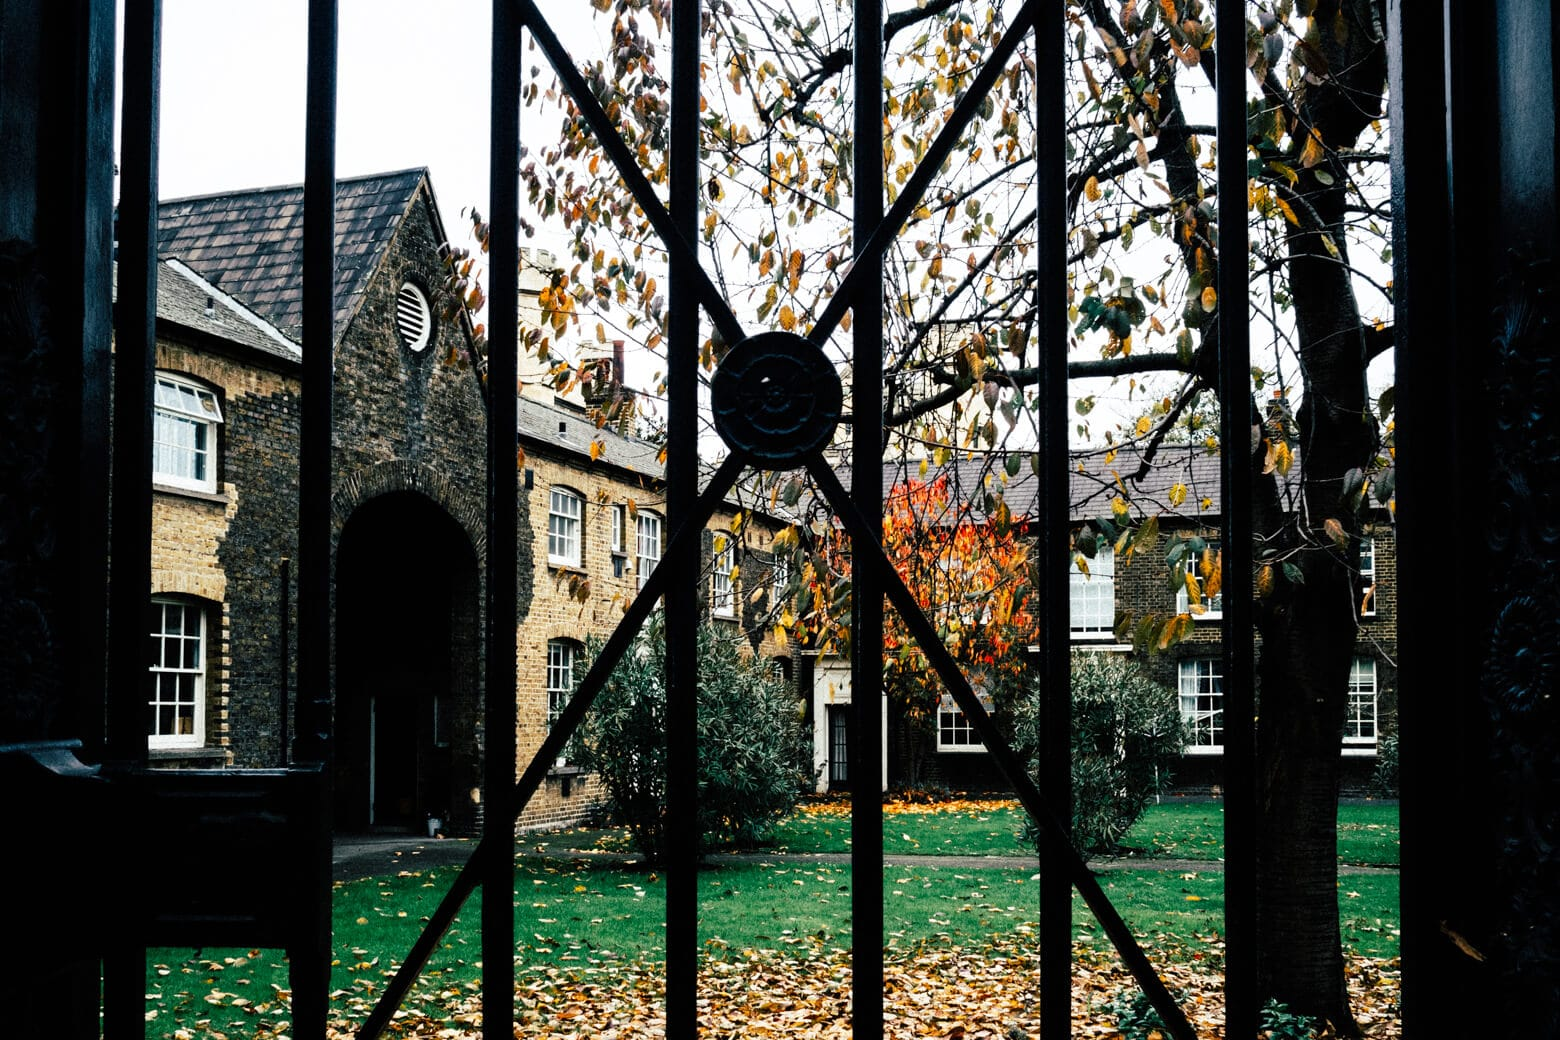 Private Courtyard at Lambeth Palace Gardens